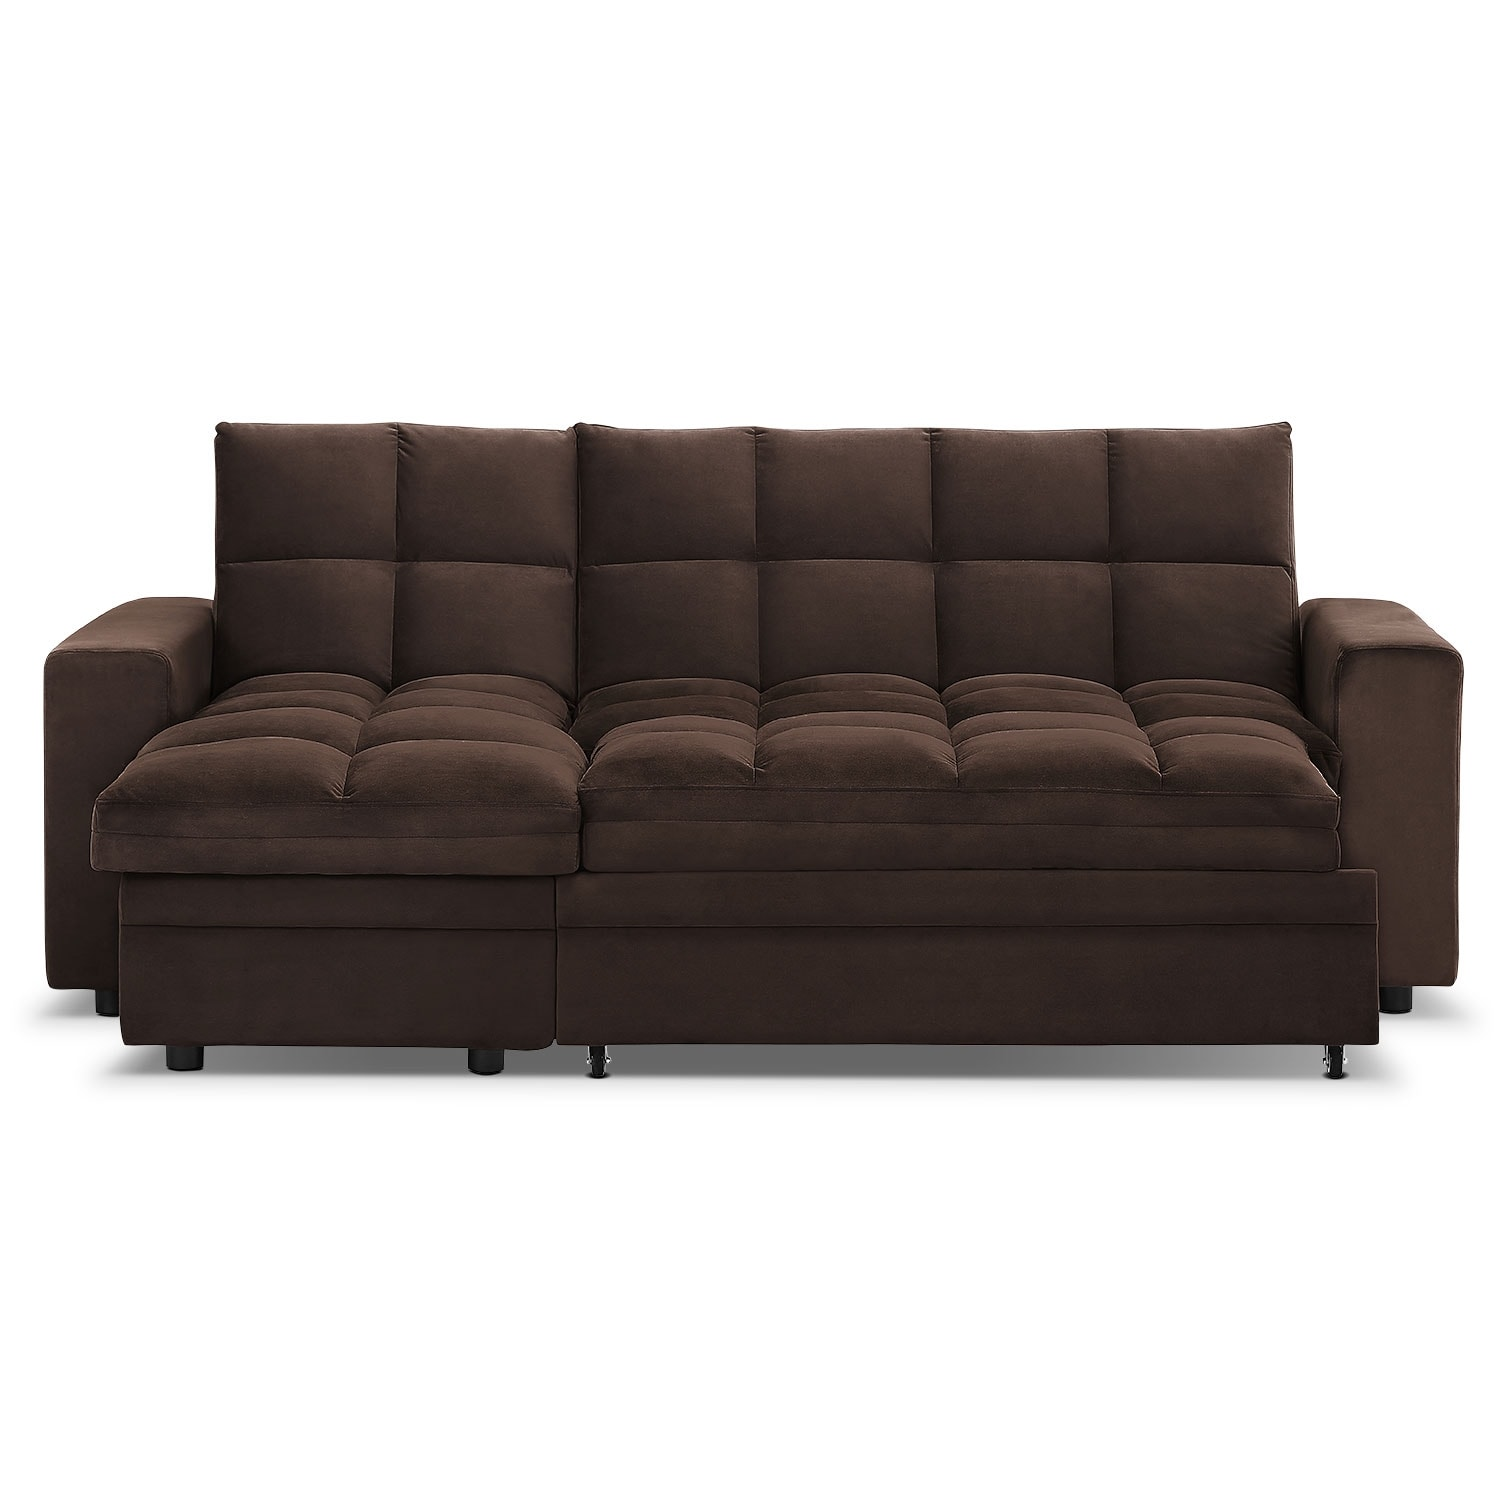 Metro chaise sofa bed with storage brown value city for Chaise bed sofa